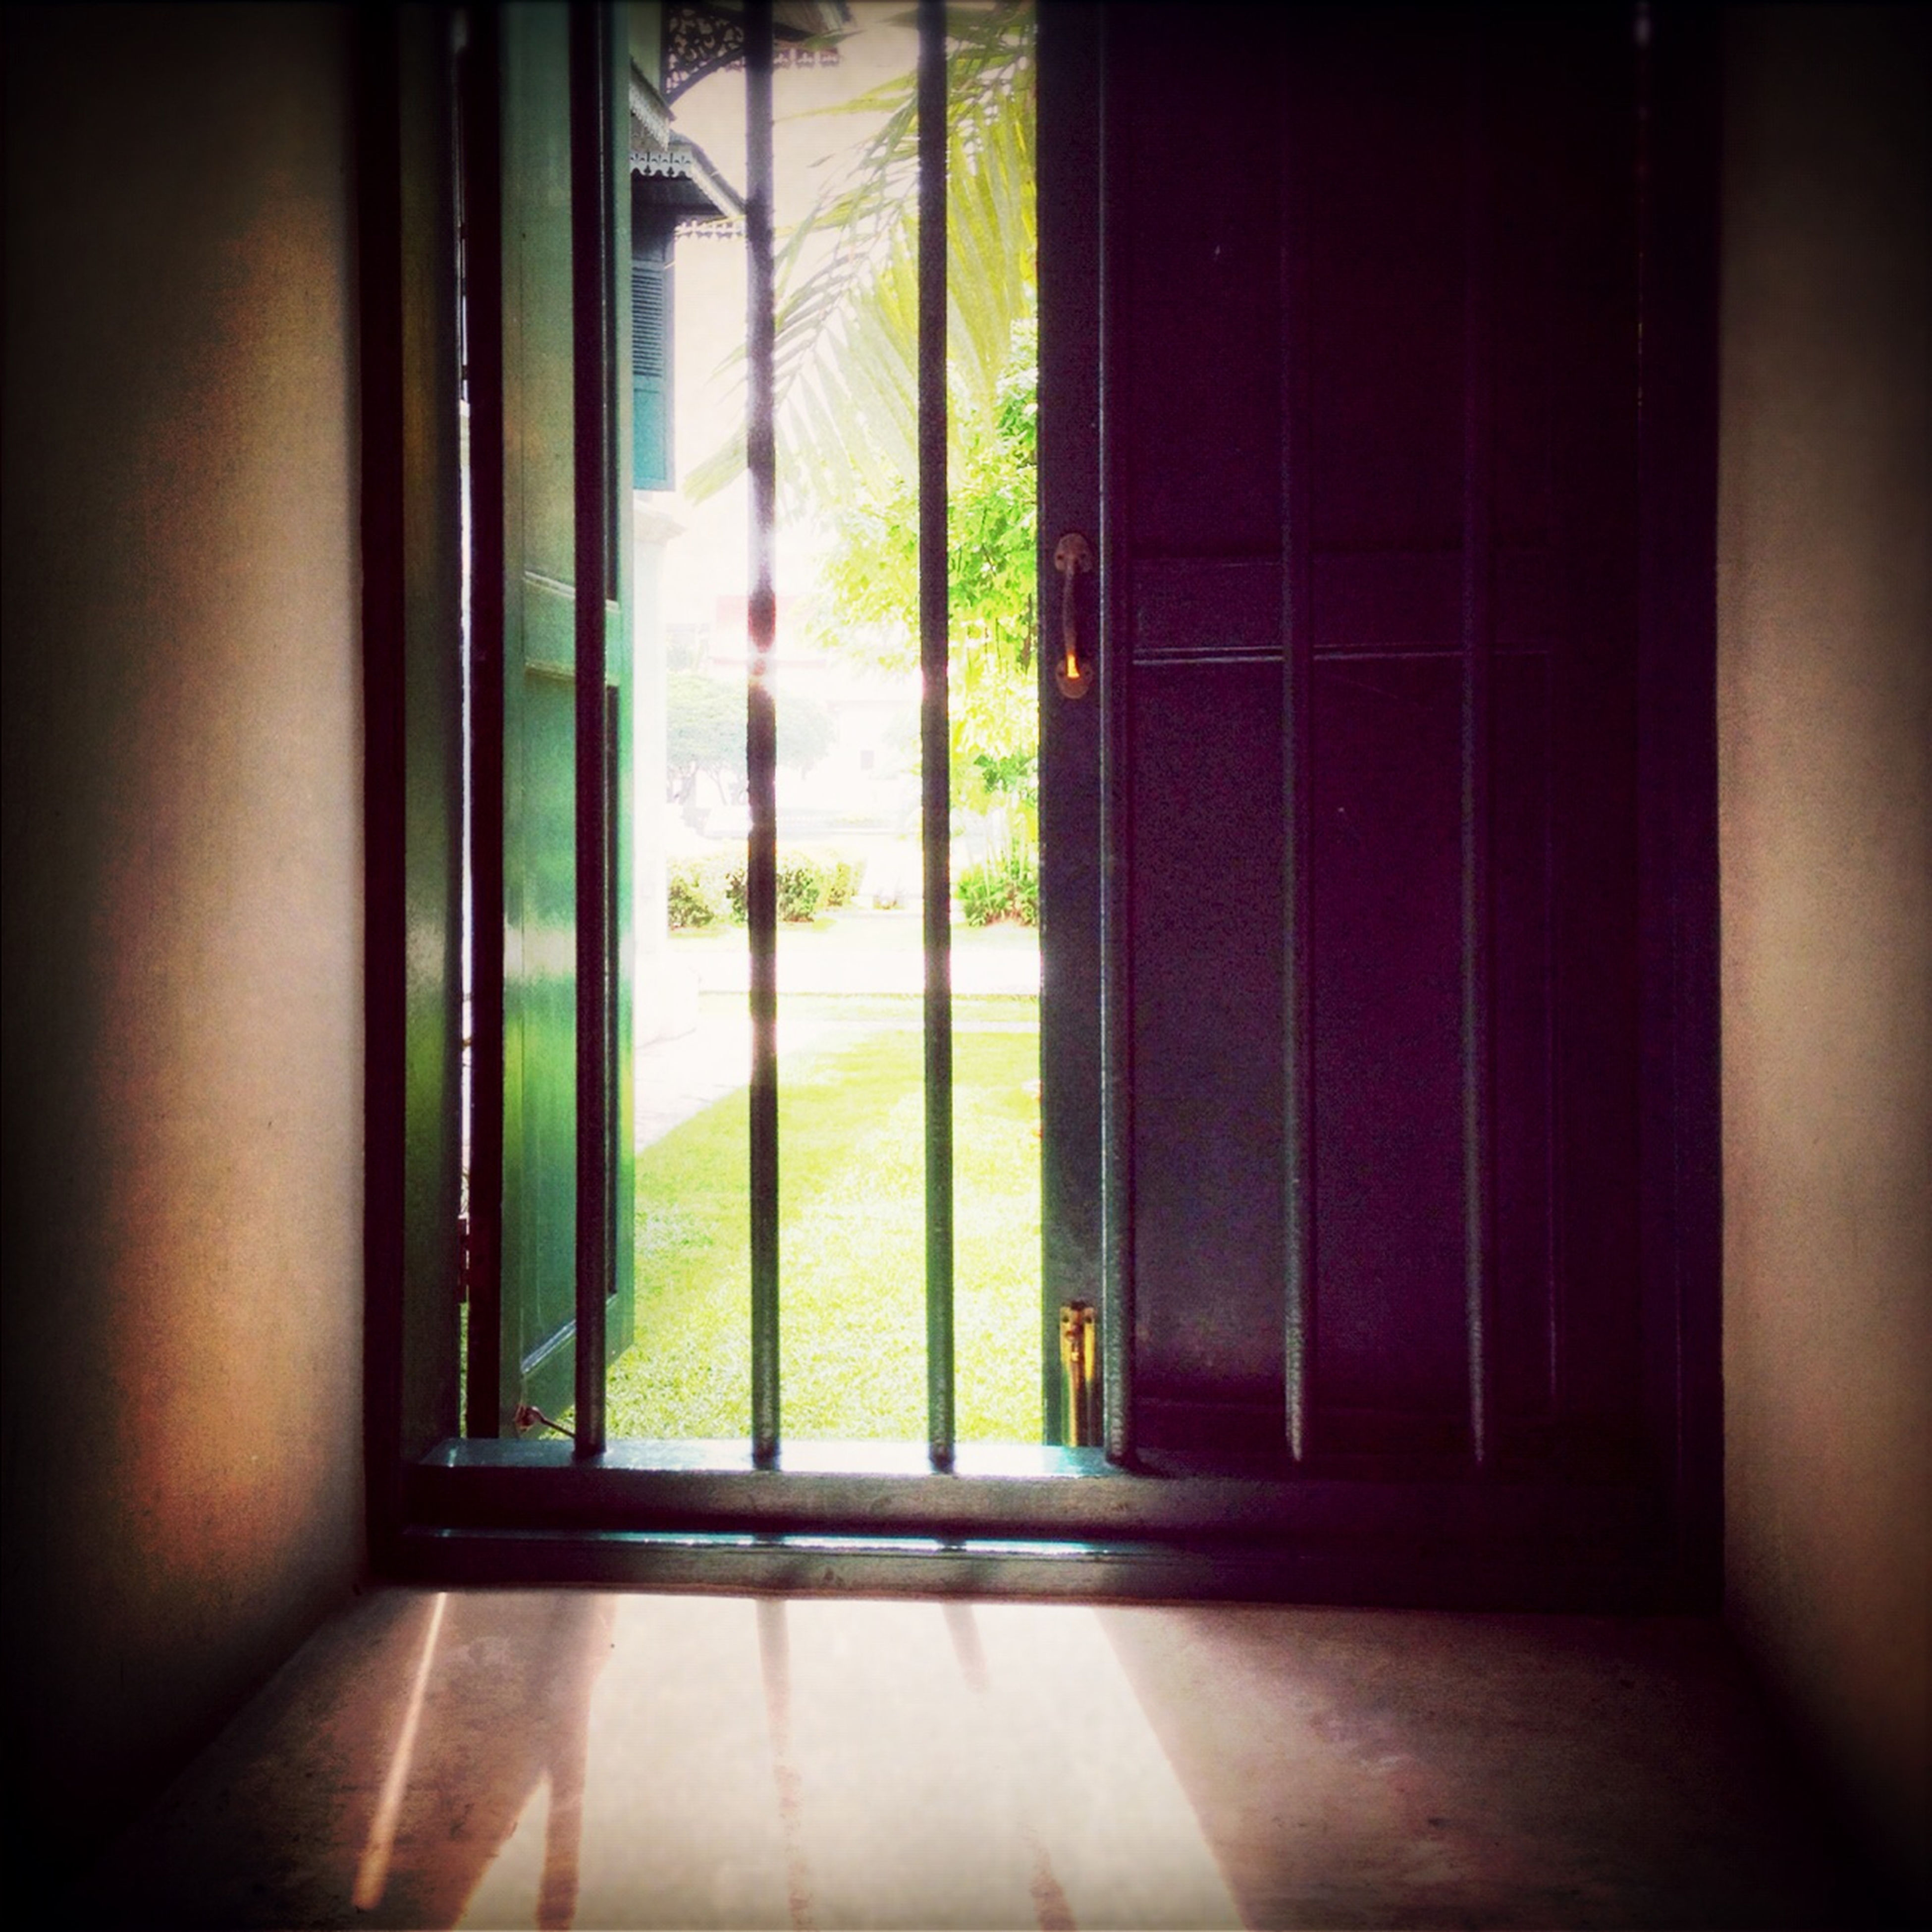 indoors, window, glass - material, transparent, door, home interior, closed, house, curtain, window sill, built structure, architecture, sunlight, domestic room, doorway, open, day, entrance, glass, window frame